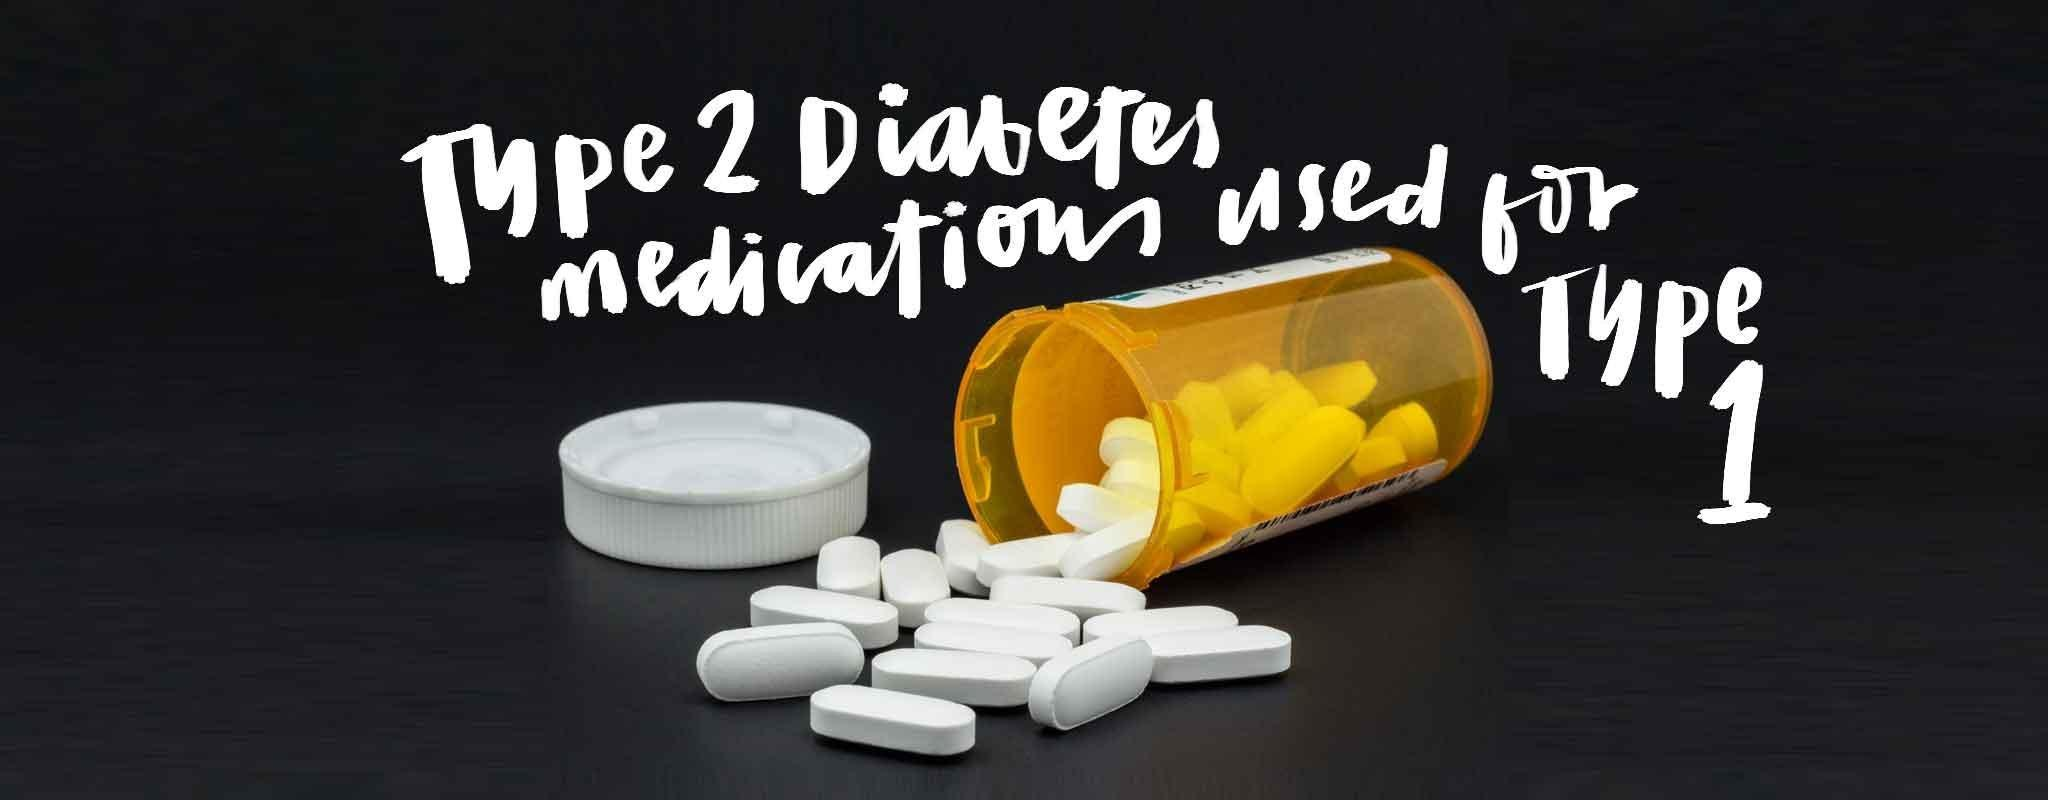 Type 2 Diabetes Medication Used for Type 1